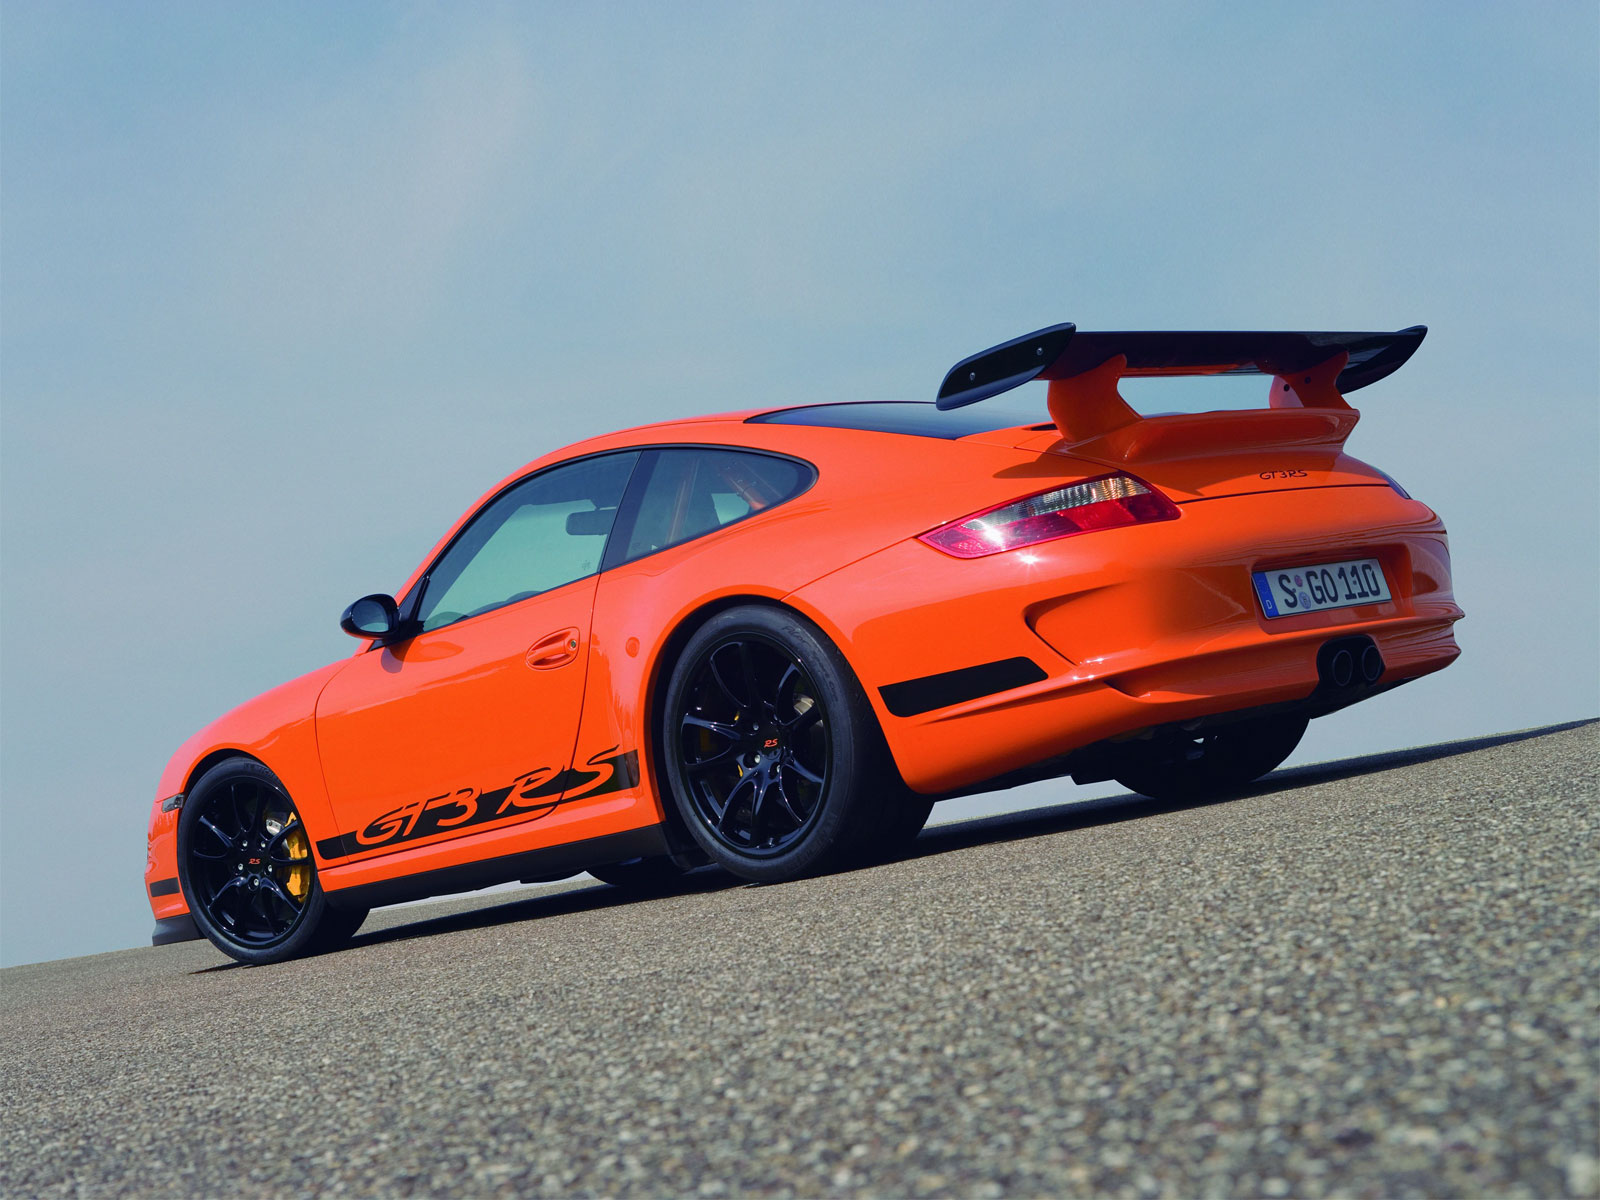 The Porsche 911 GT3 RS has been picked as the Best Driver's Car in ...